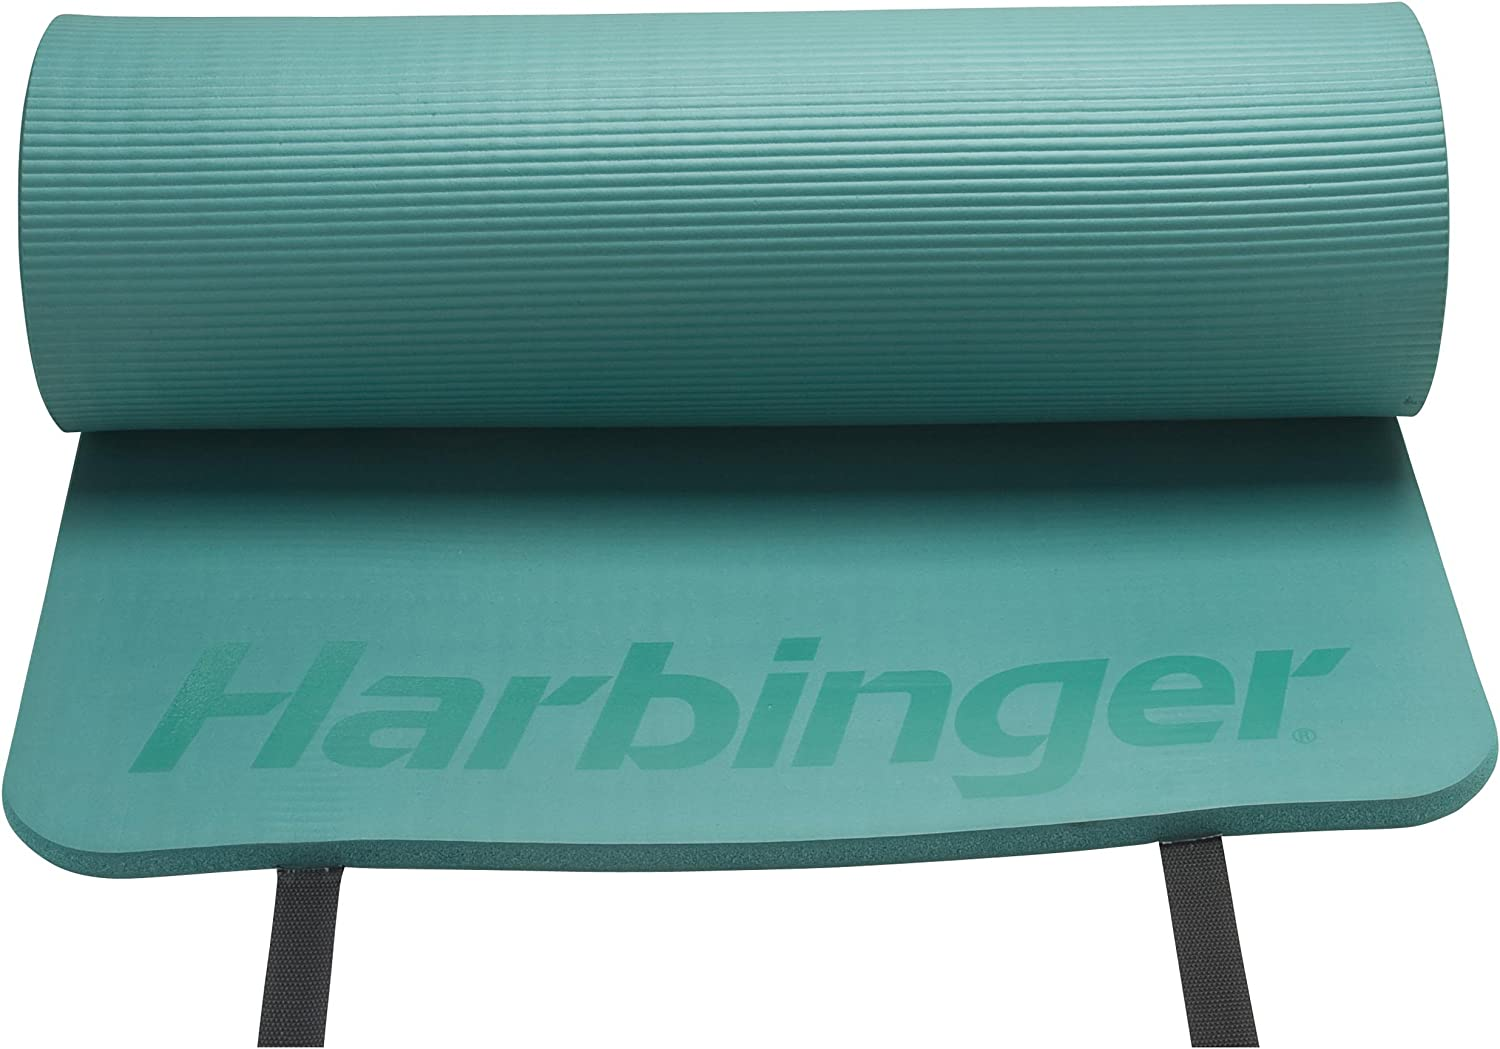 Harbinger Ribbed Durafoam Exercise Mat 5/8-Inch, Green : Sports & Outdoors